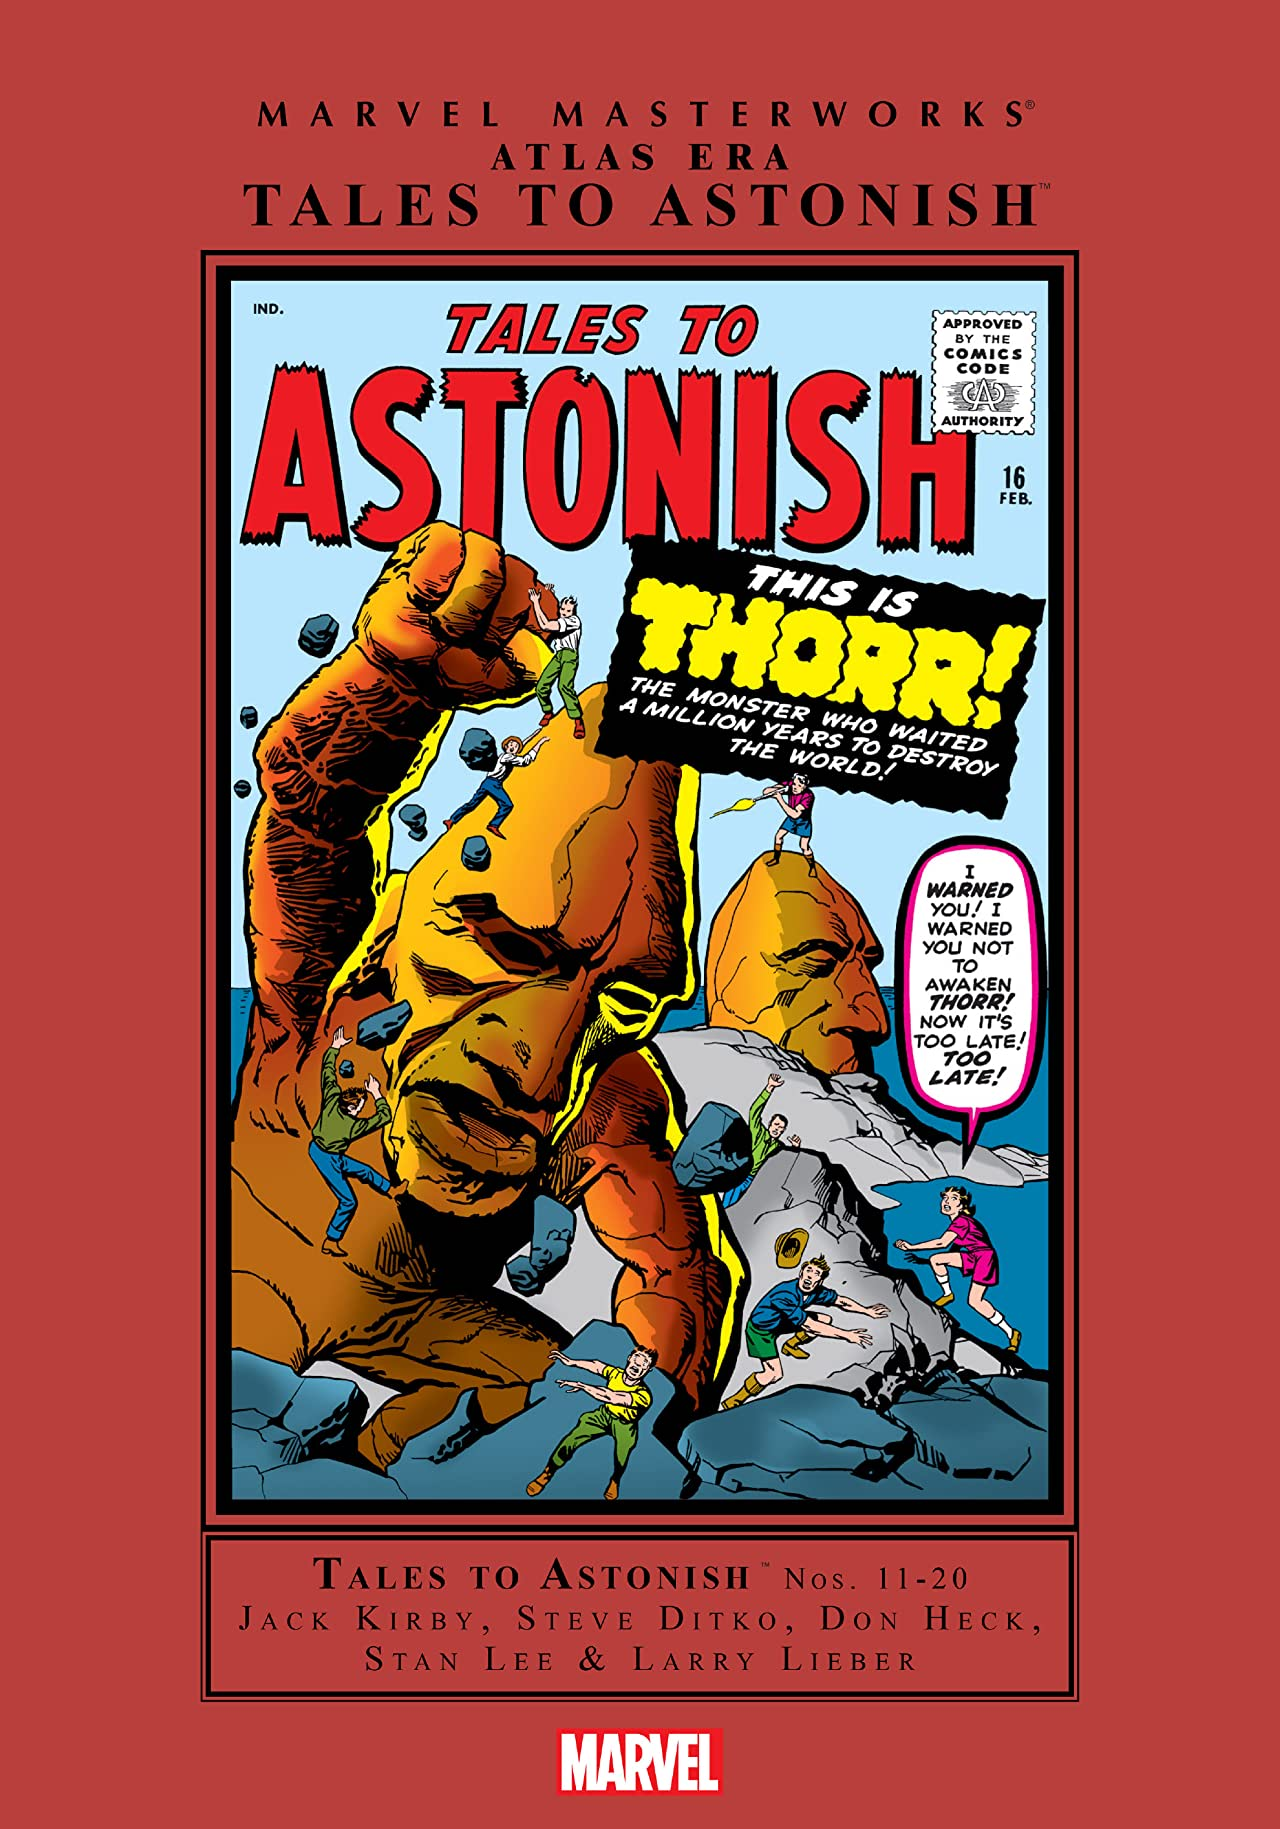 Atlas Era Tales To Astonish Masterworks Vol. 2